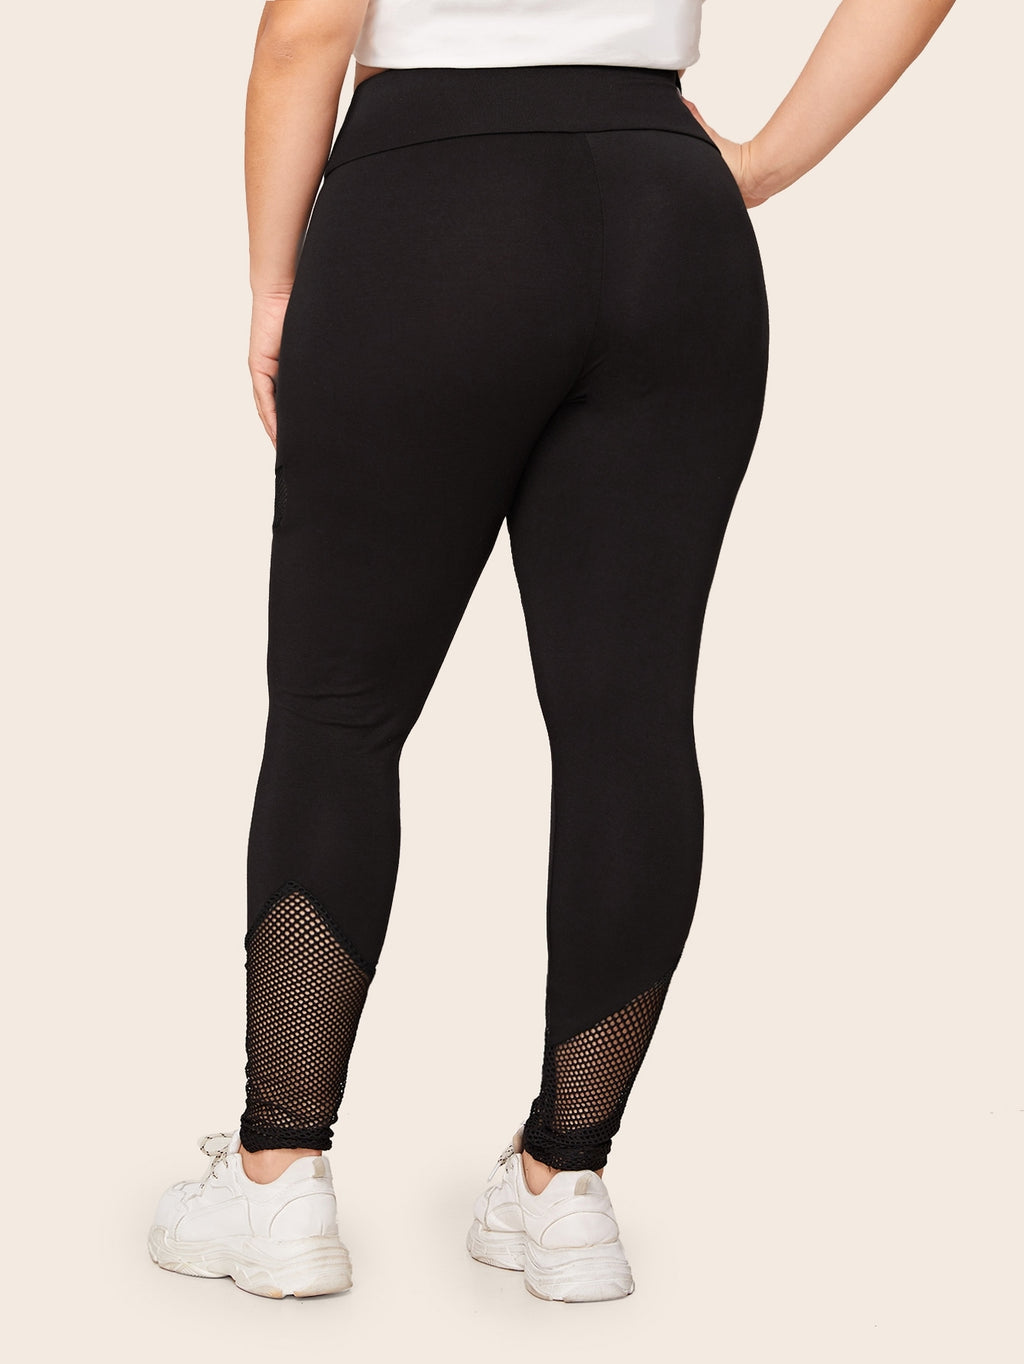 Plus Size Sport Waistband Mesh Insert Leggings